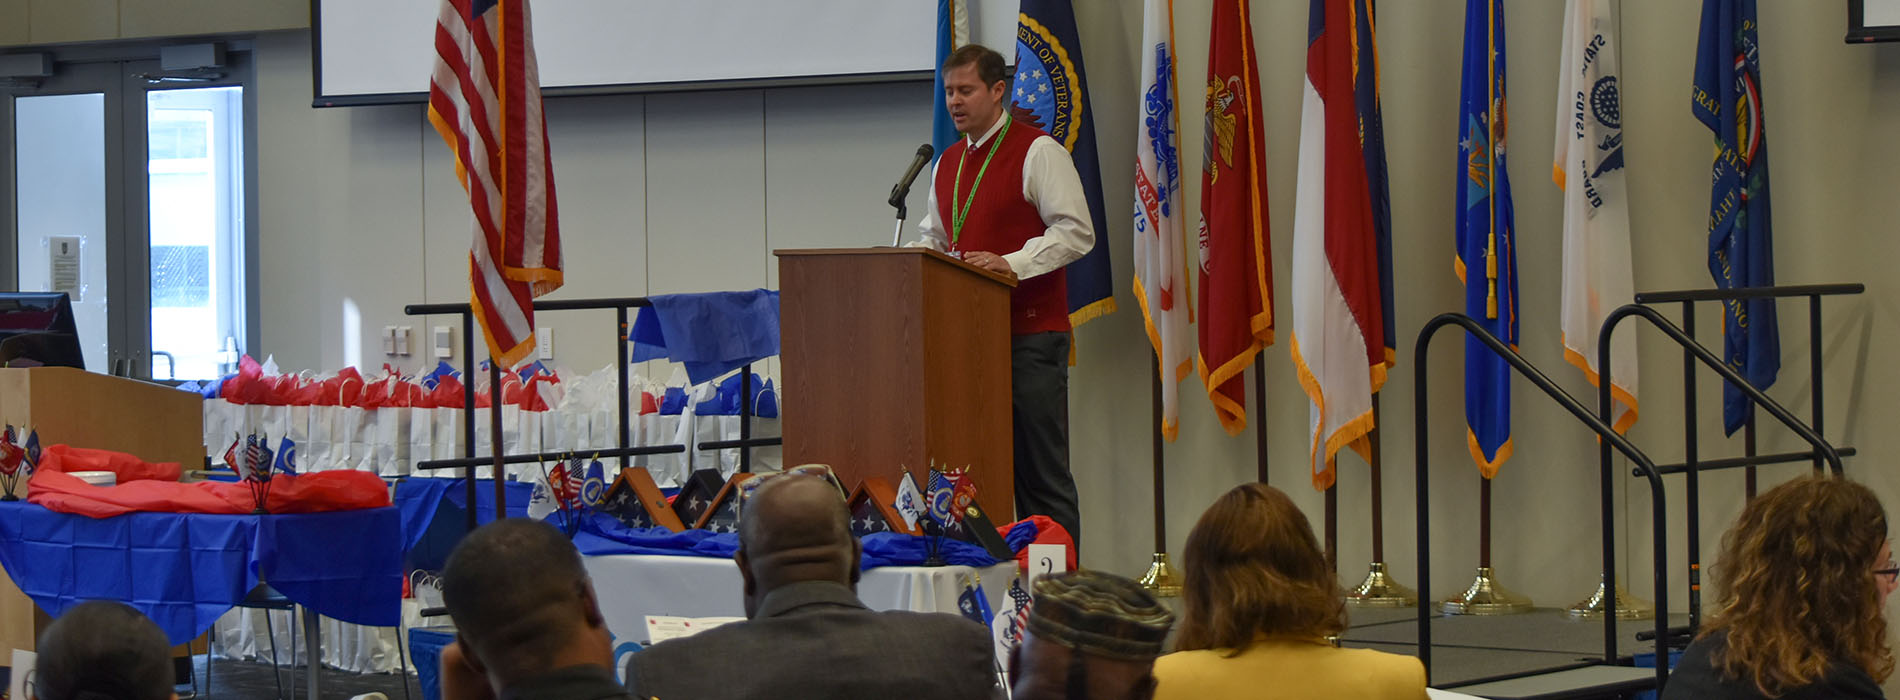 Speaker at podium at Veterans Day celebration in 2018 with audience